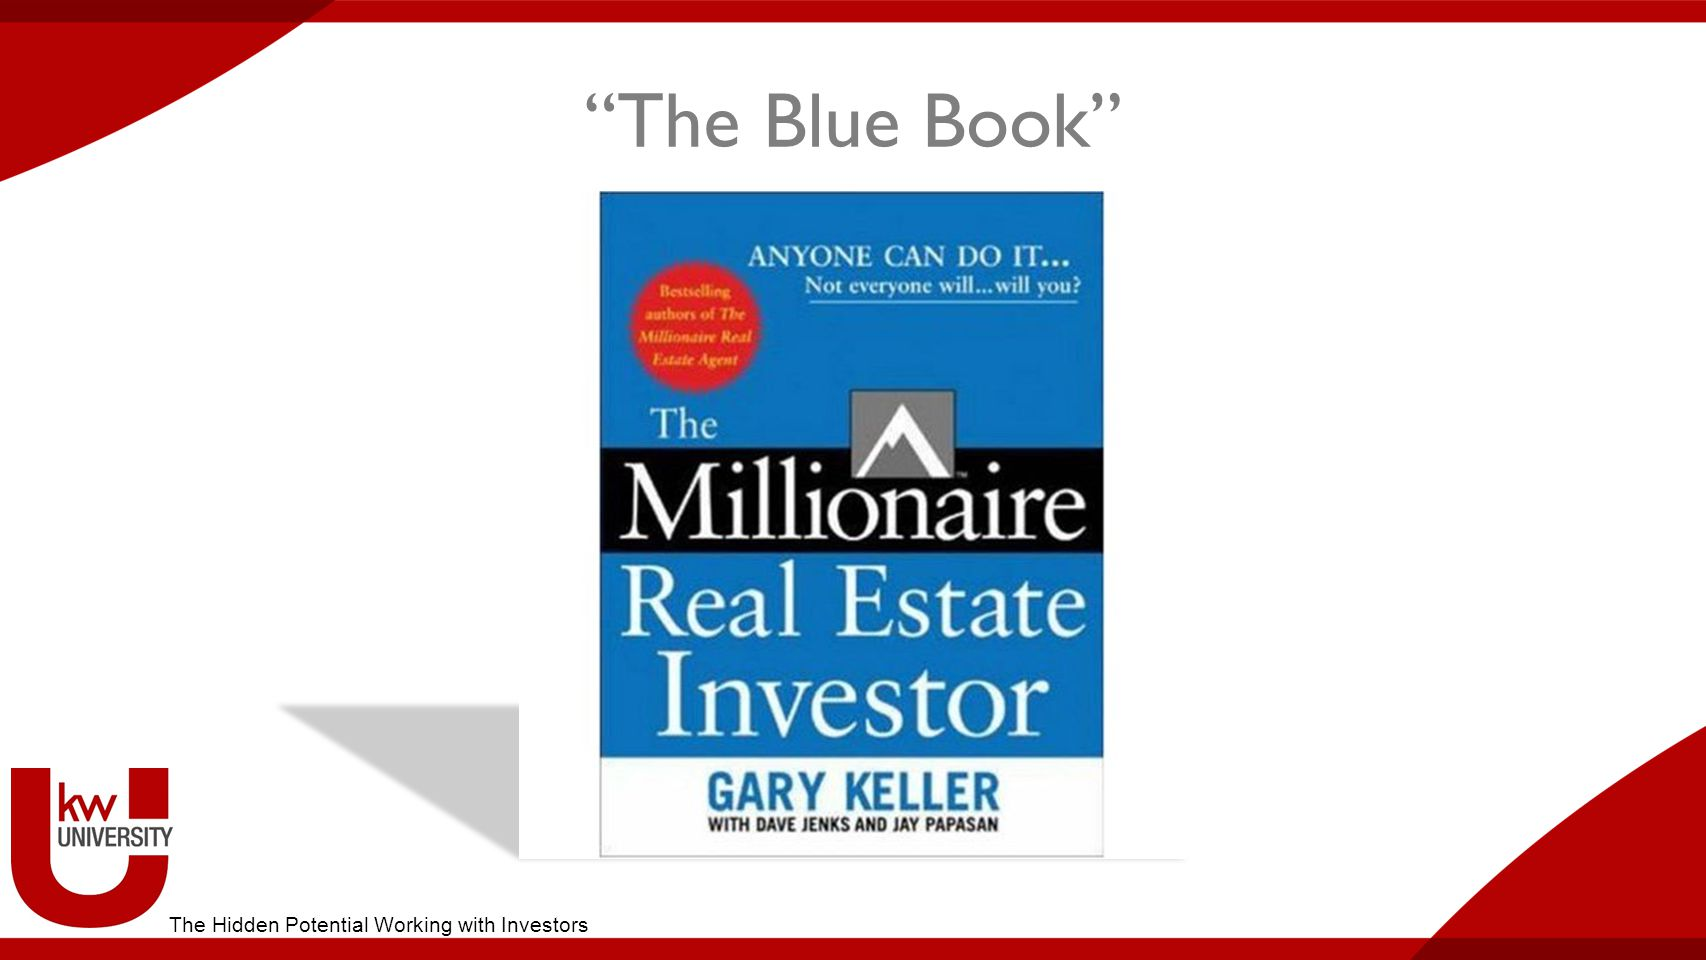 The Blue Book The Hidden Potential Working with Investors